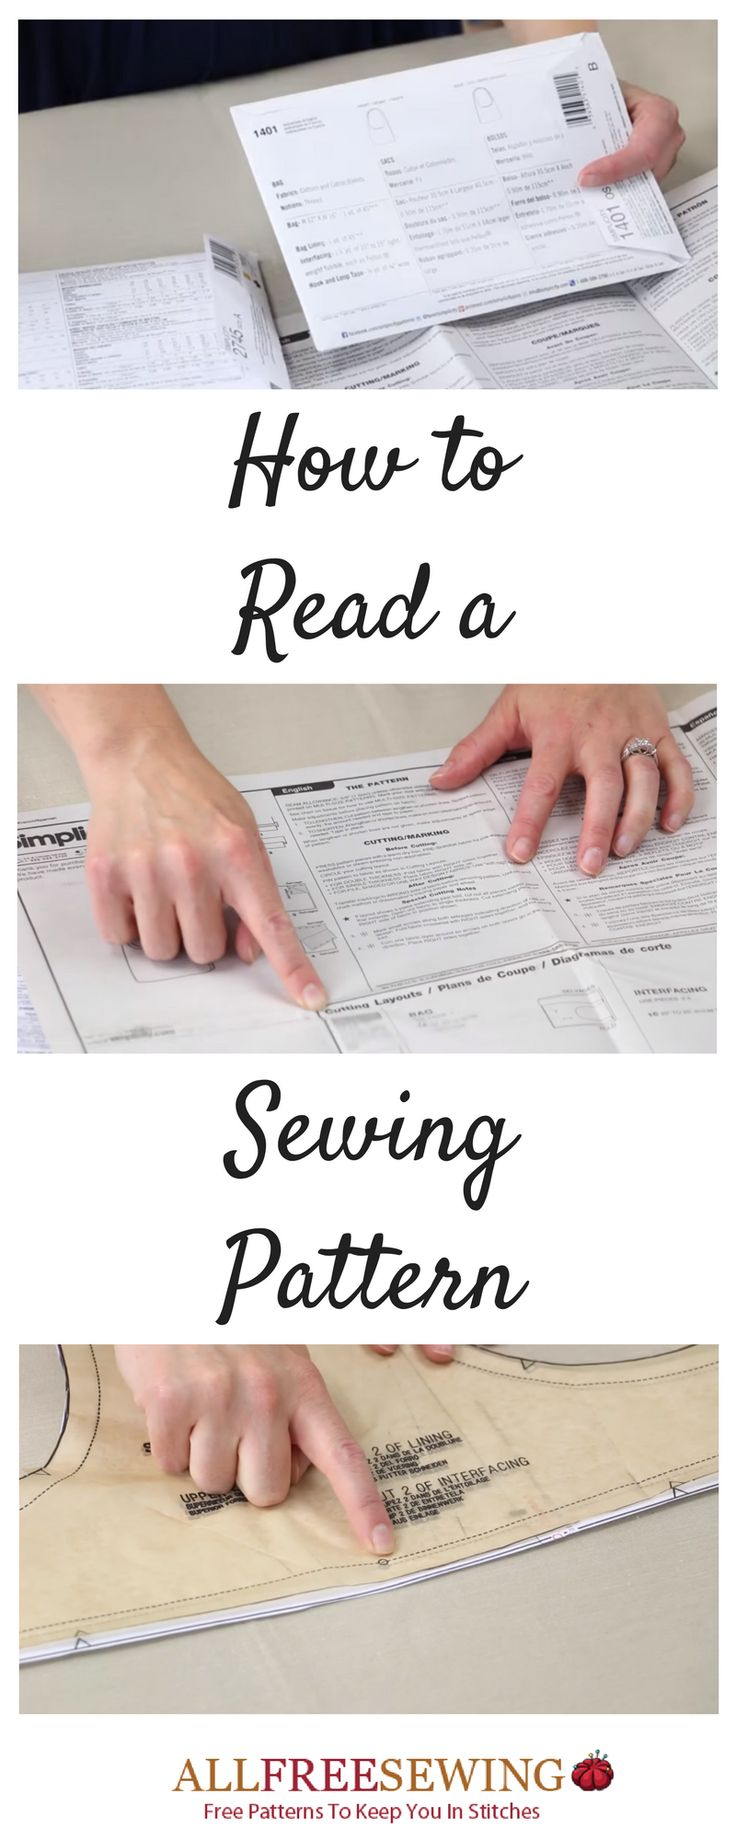 Understand the details of reading a sewing pattern, learn the symbols, and more in this NEW article.